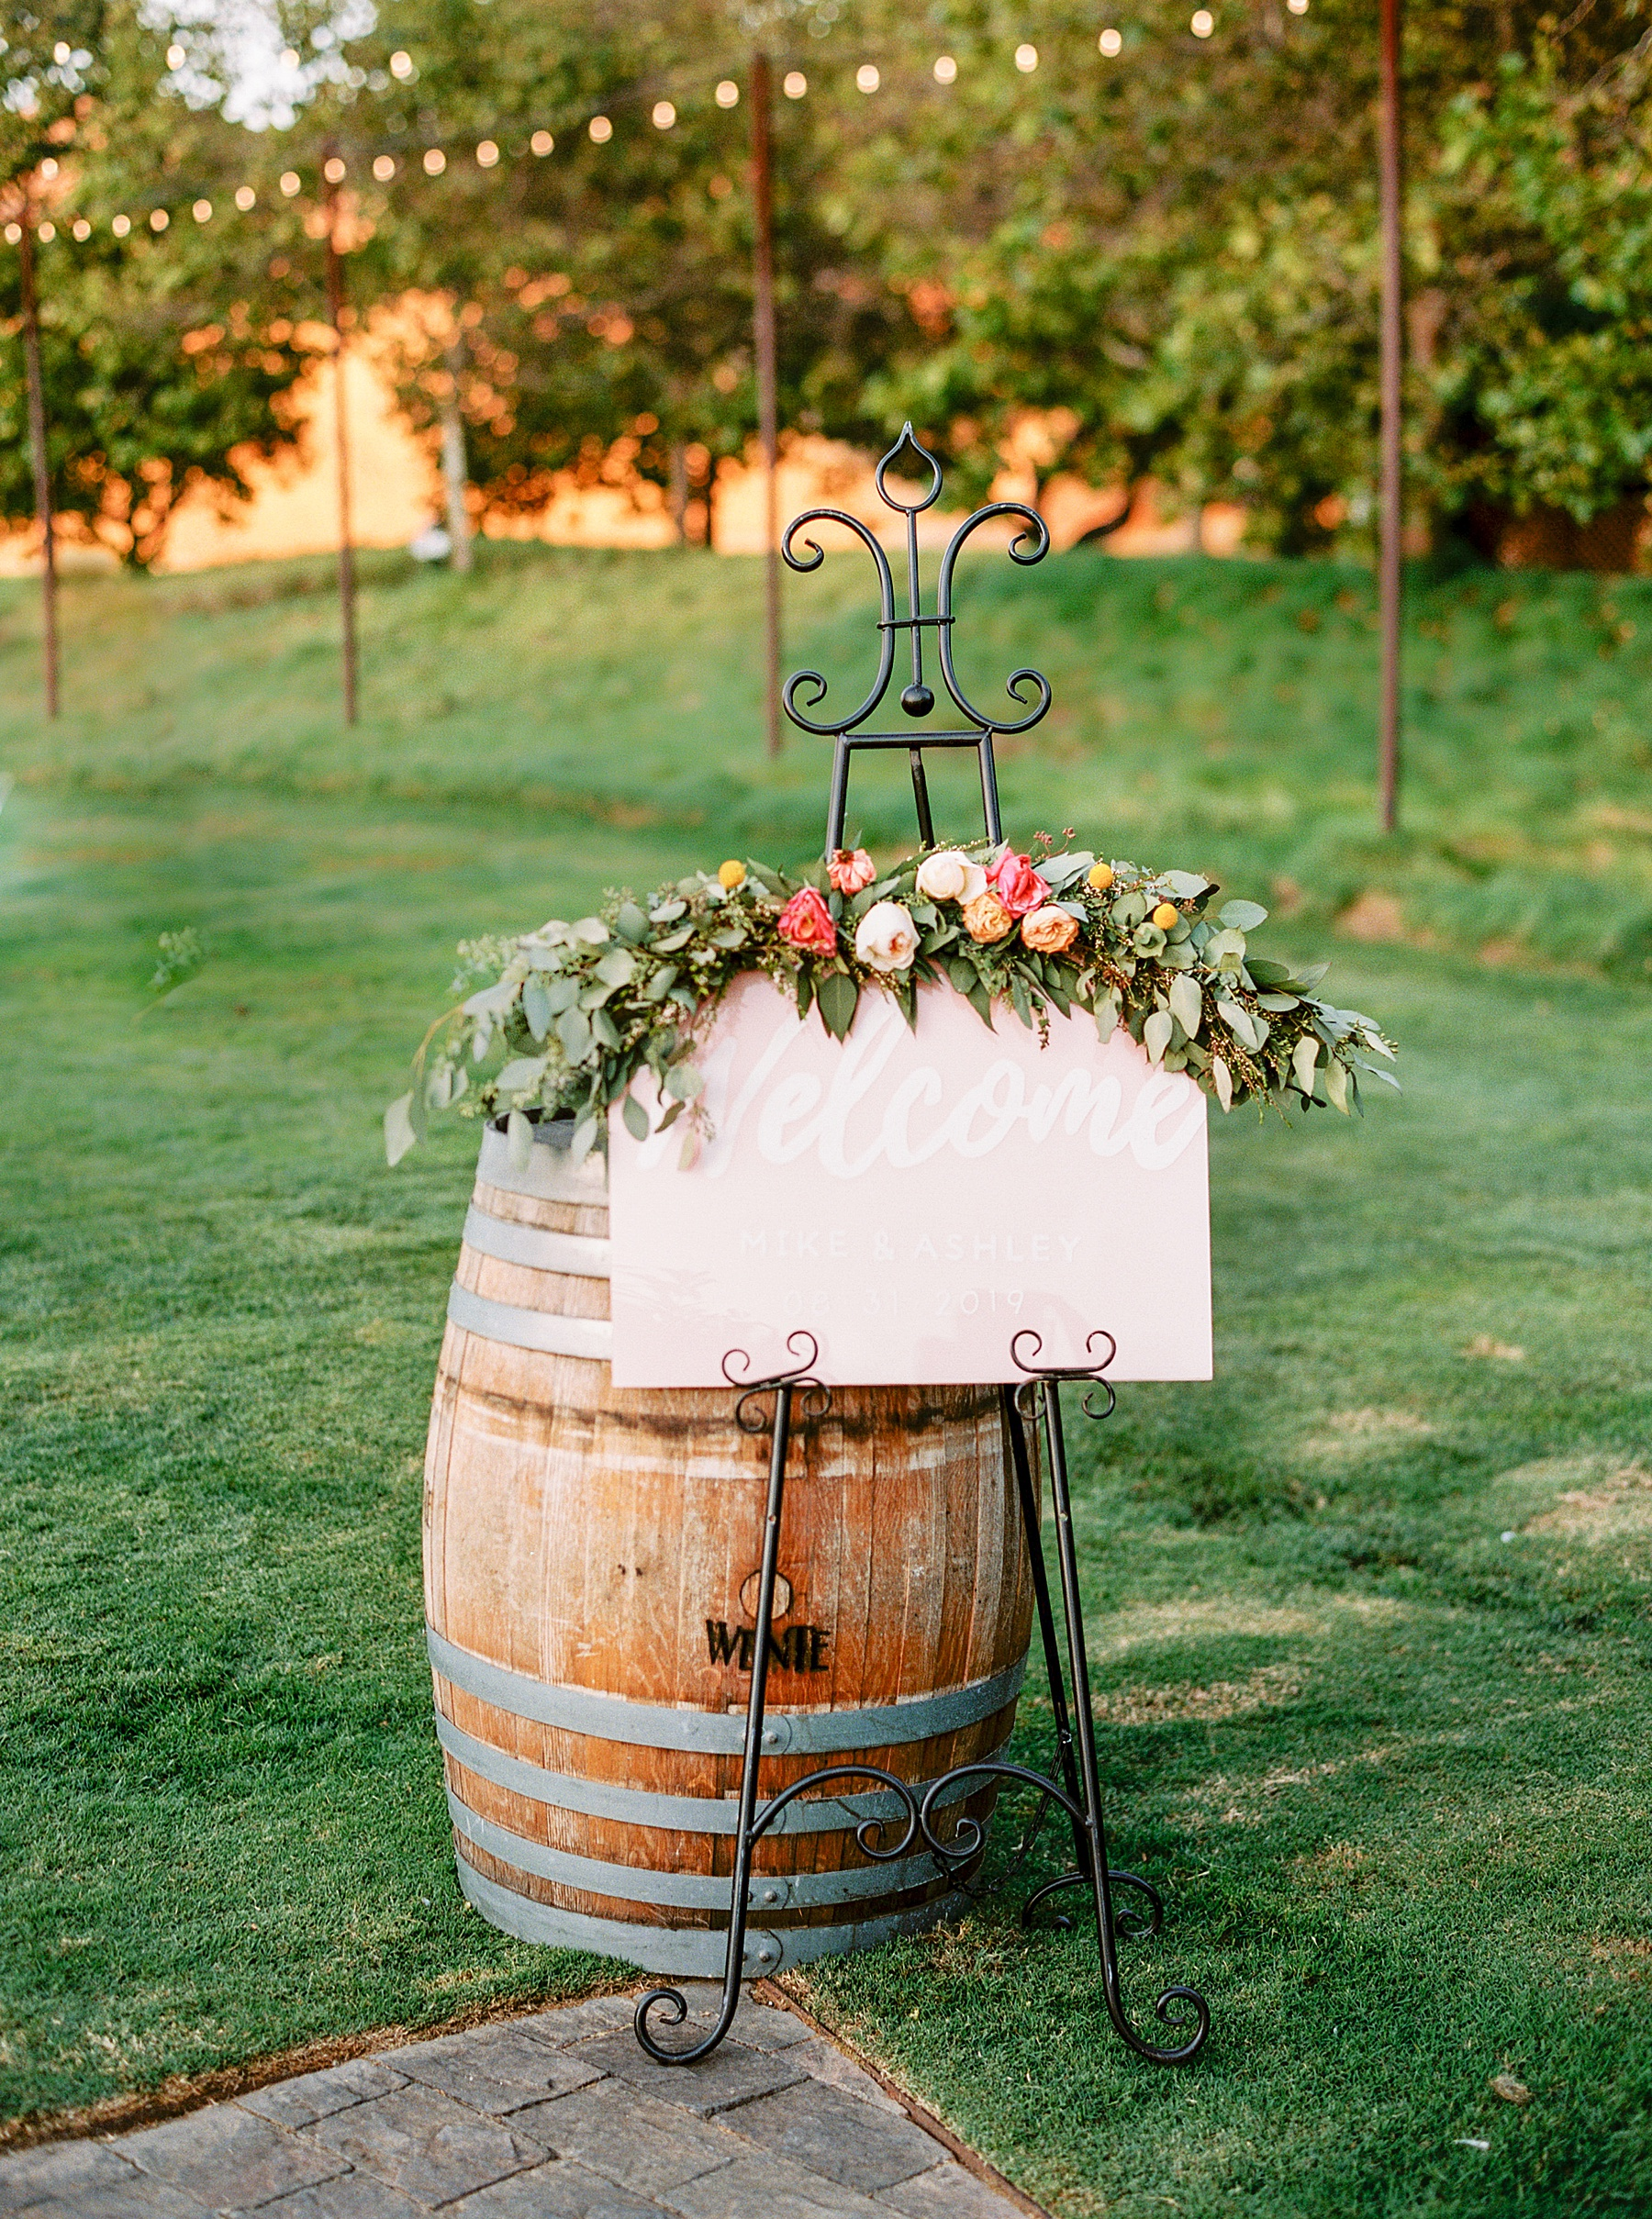 Wente Wedding with A Tropical Color Palette - Ashley & Mike - Featured on Inspired by This - Ashley Baumgartner_0028.jpg